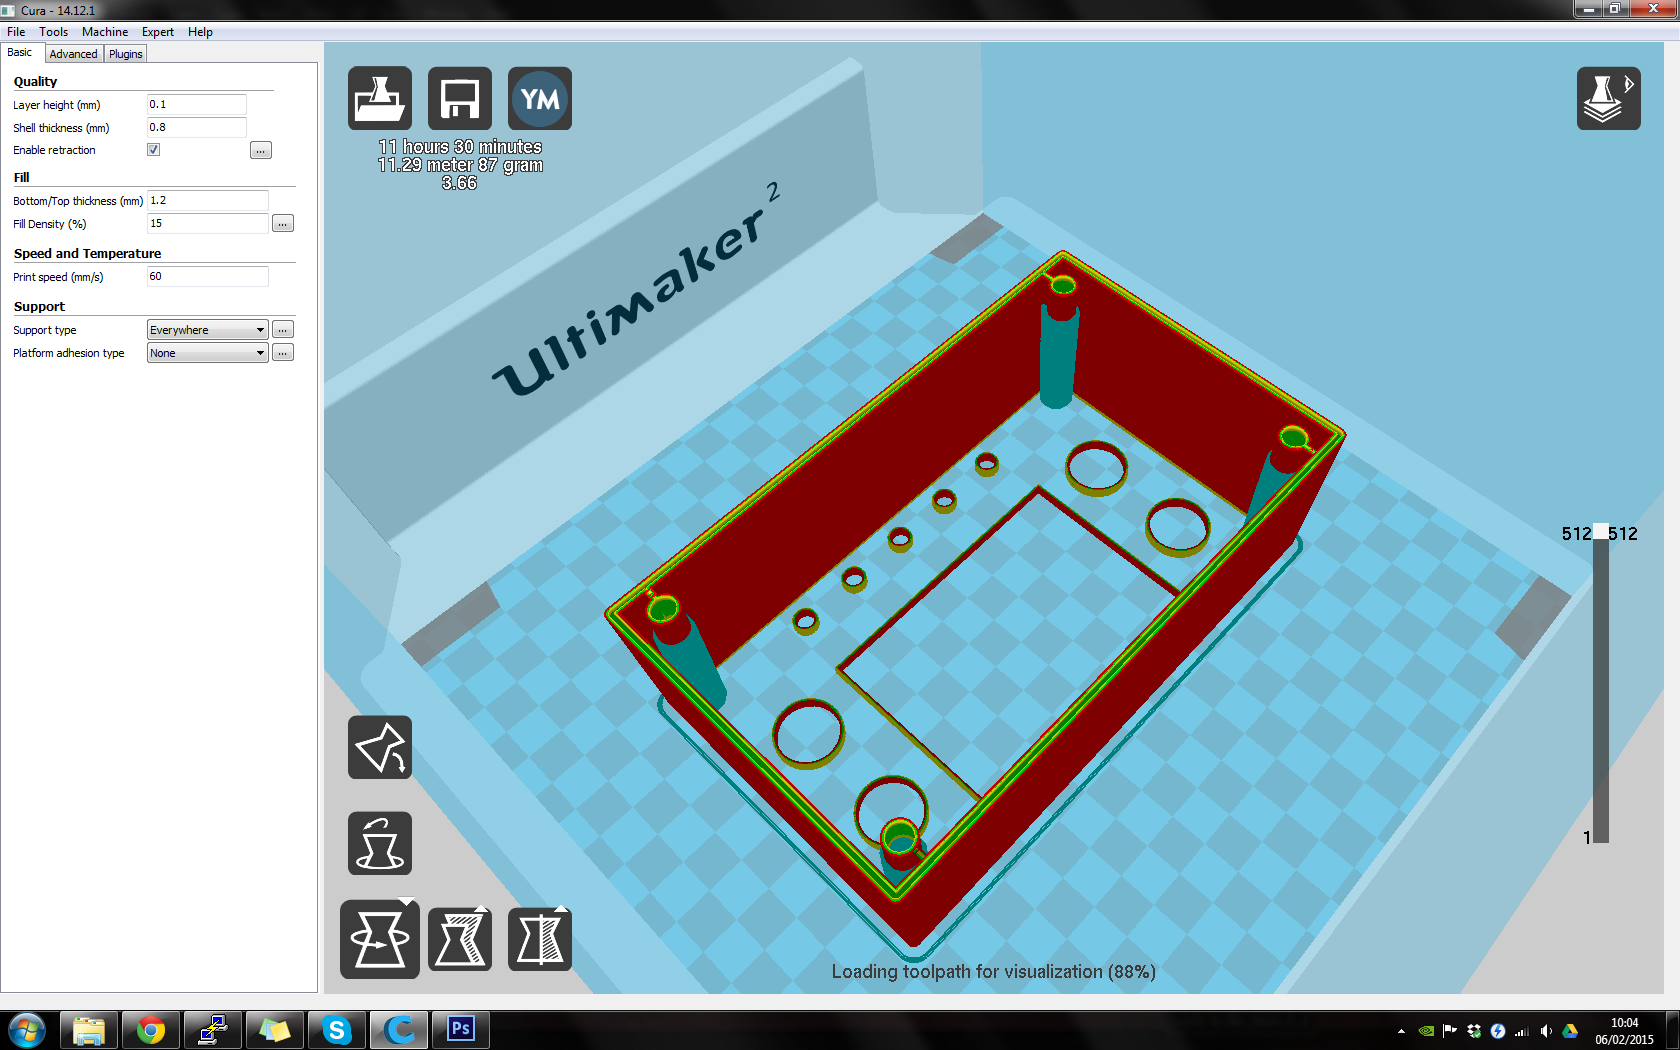 Carte But Retractation.Best Printing Practices On An Ultimaker How To Hub Talk